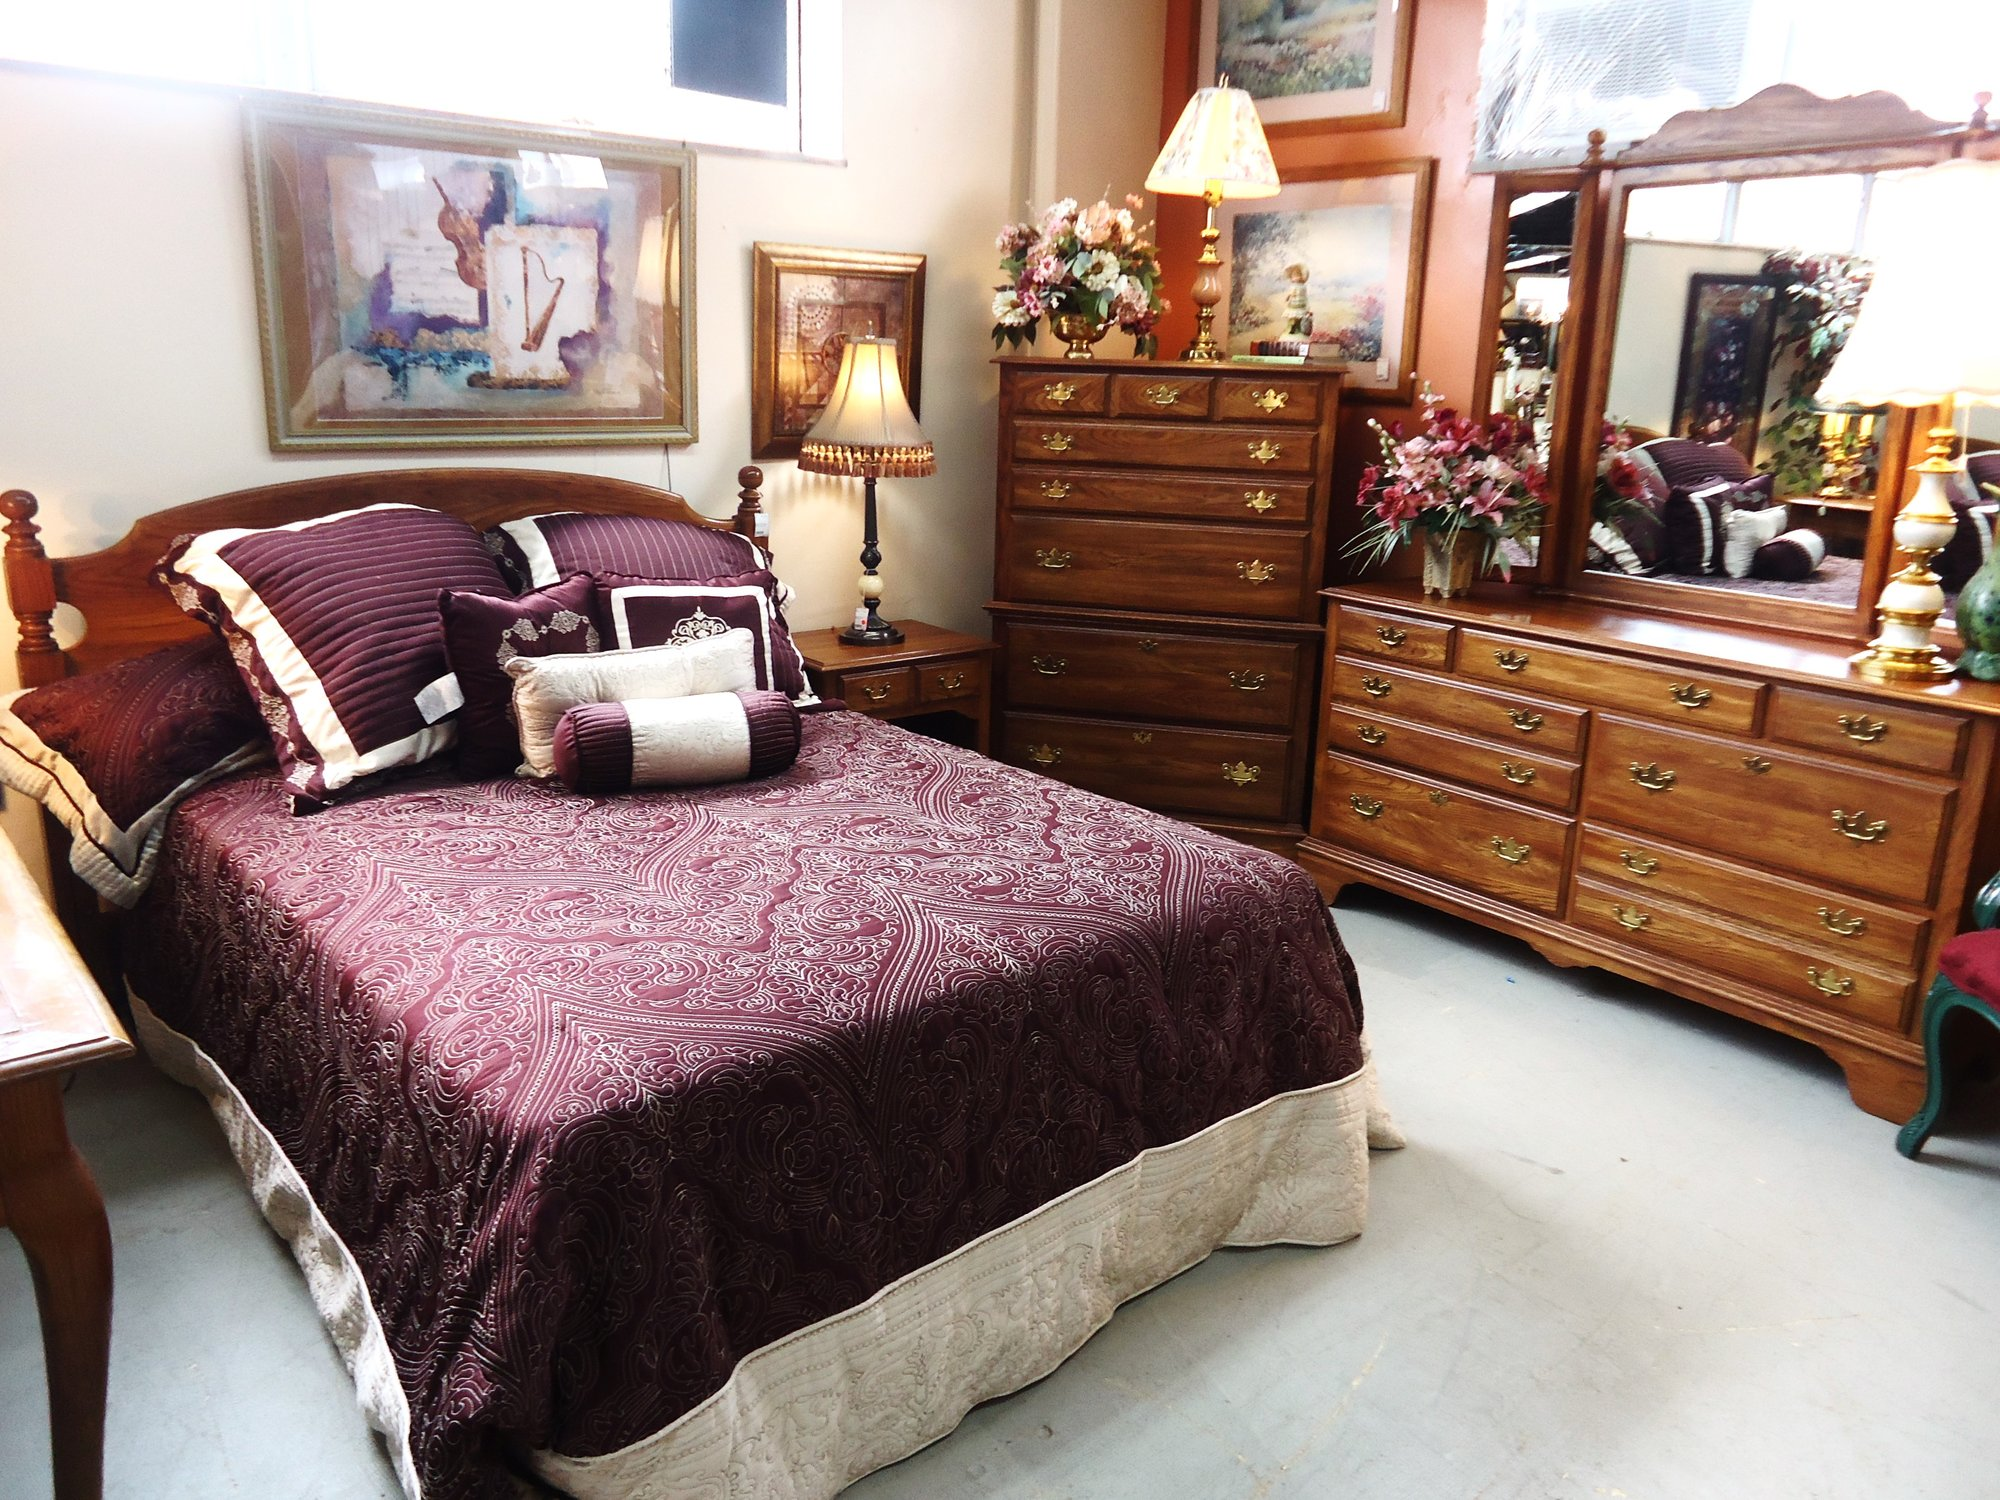 furnishing a small bedroom used furniture gallery 15361